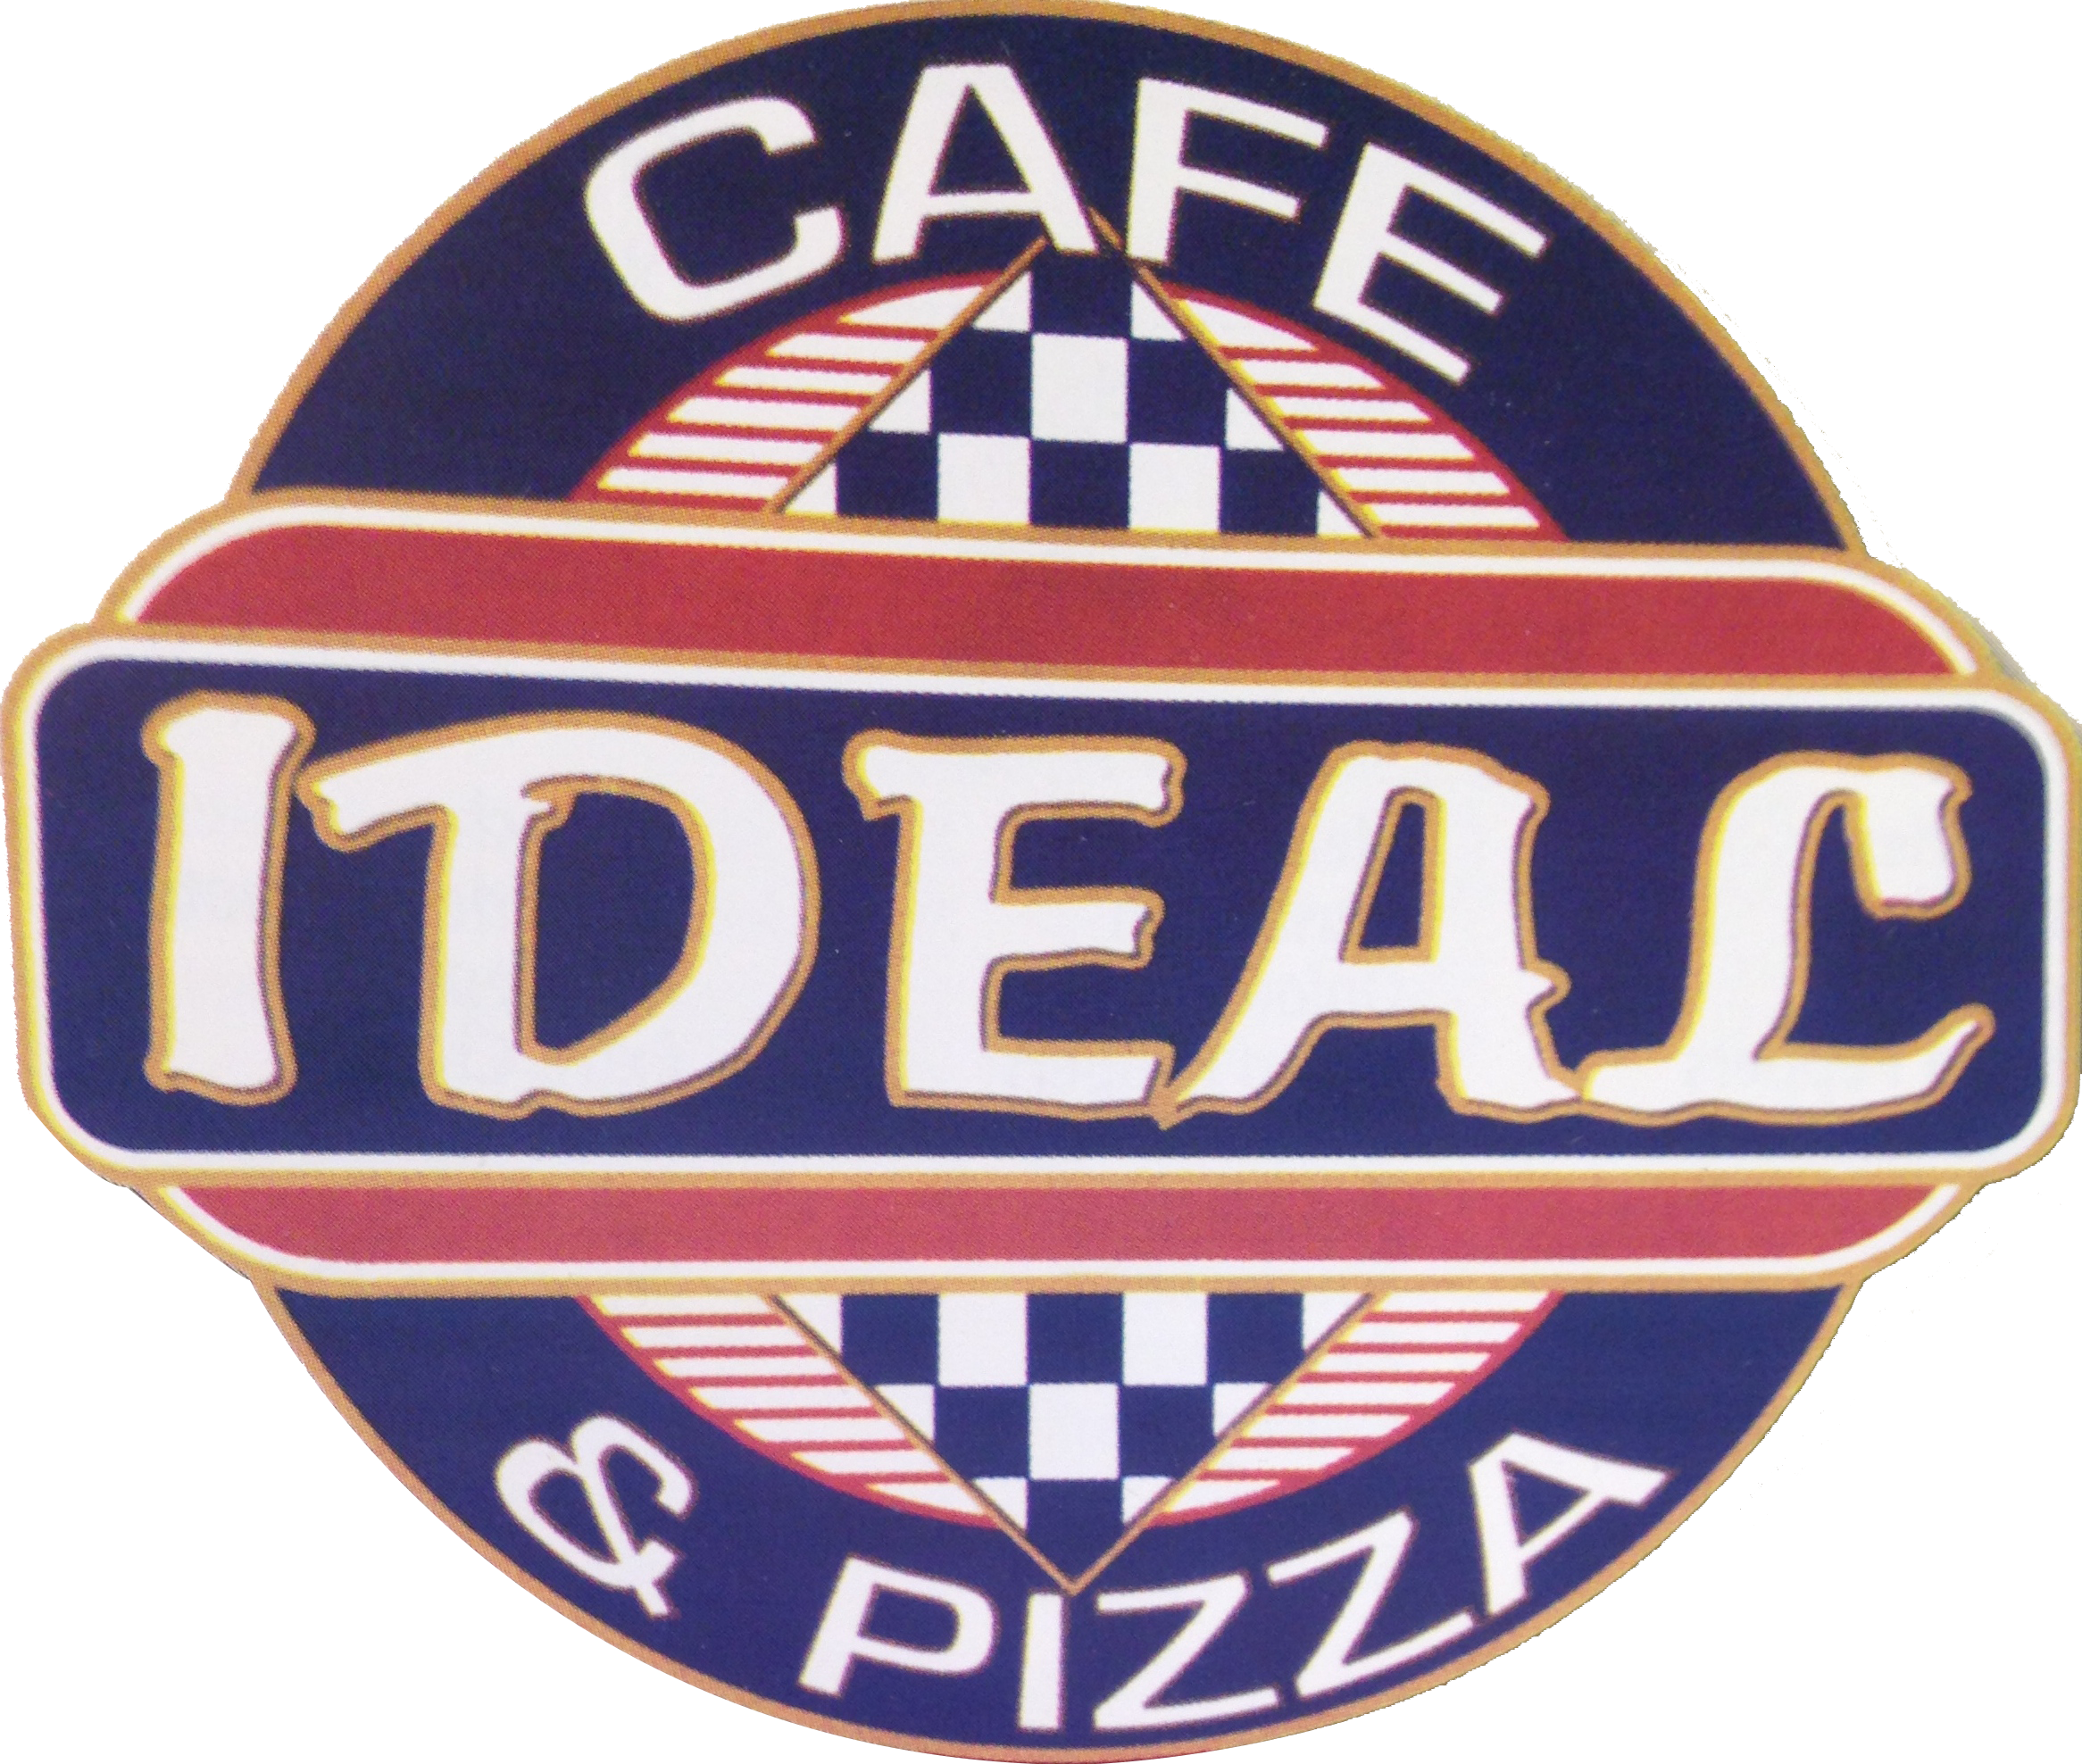 Cafe Ideal.png